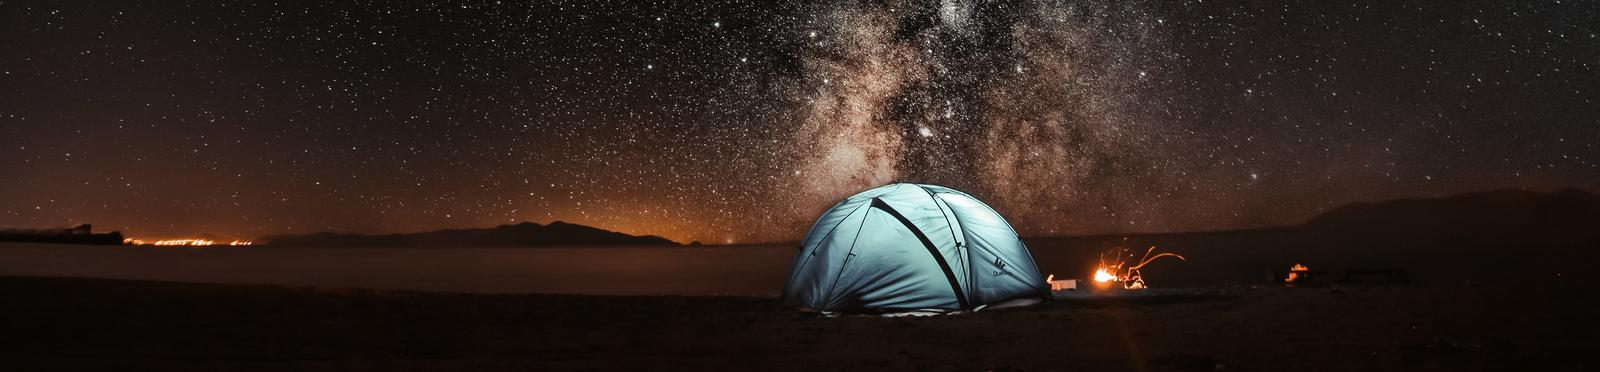 Adventurous spot with a tent under the sky full of stars